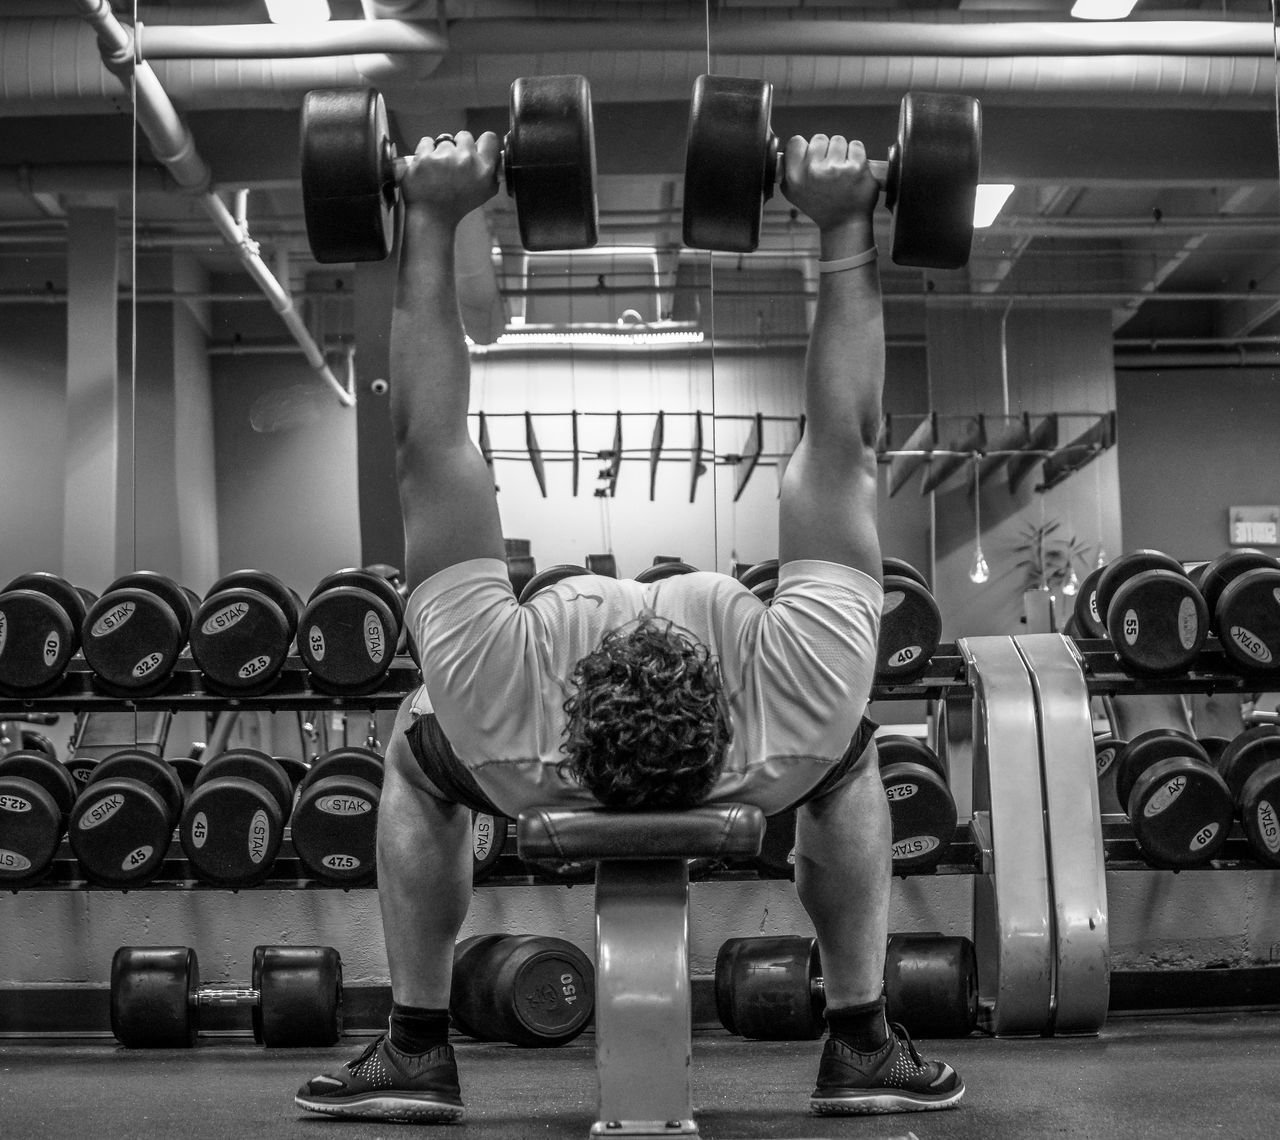 18-105mm Athlete Athlete Black And White Blackandwhite Gym Health Club Healthy Healthy Lifestyle Indoors  Lifestyles Lifting Weights Men Mirror One Man Only One Person Portrait Portrait Of A Friend Portrait Of A Man  Sony A6300 Sport Sports Training Sportsman Weightlifting Weights